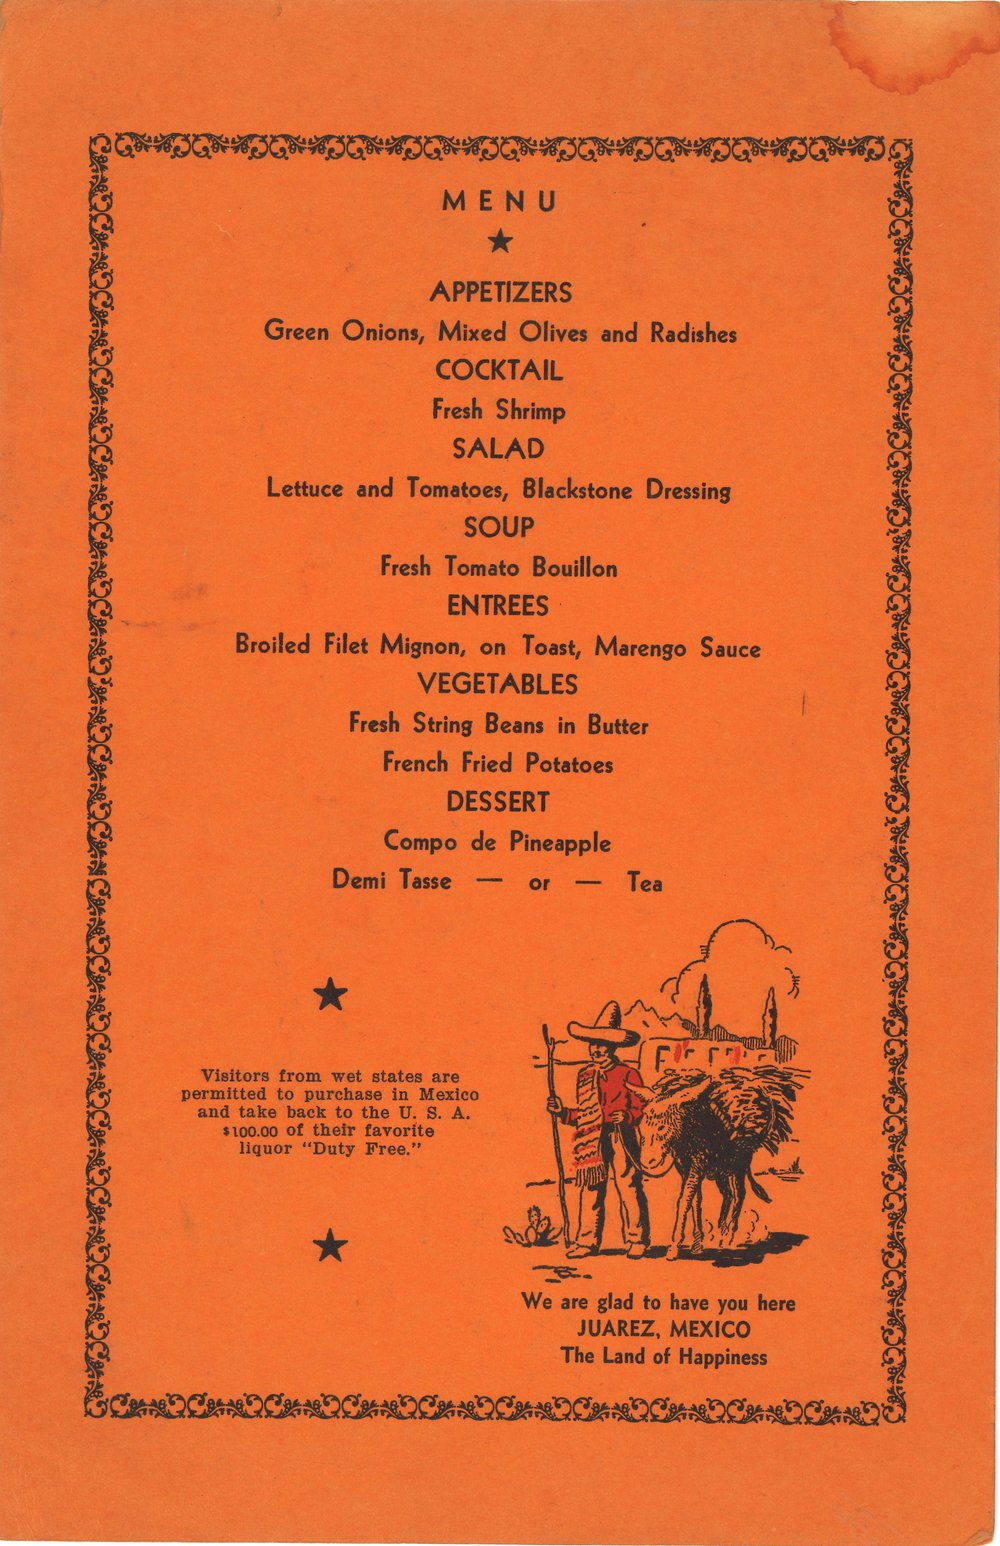 Fred Borland and Co Lobby Cafe Menu 2_small.jpg